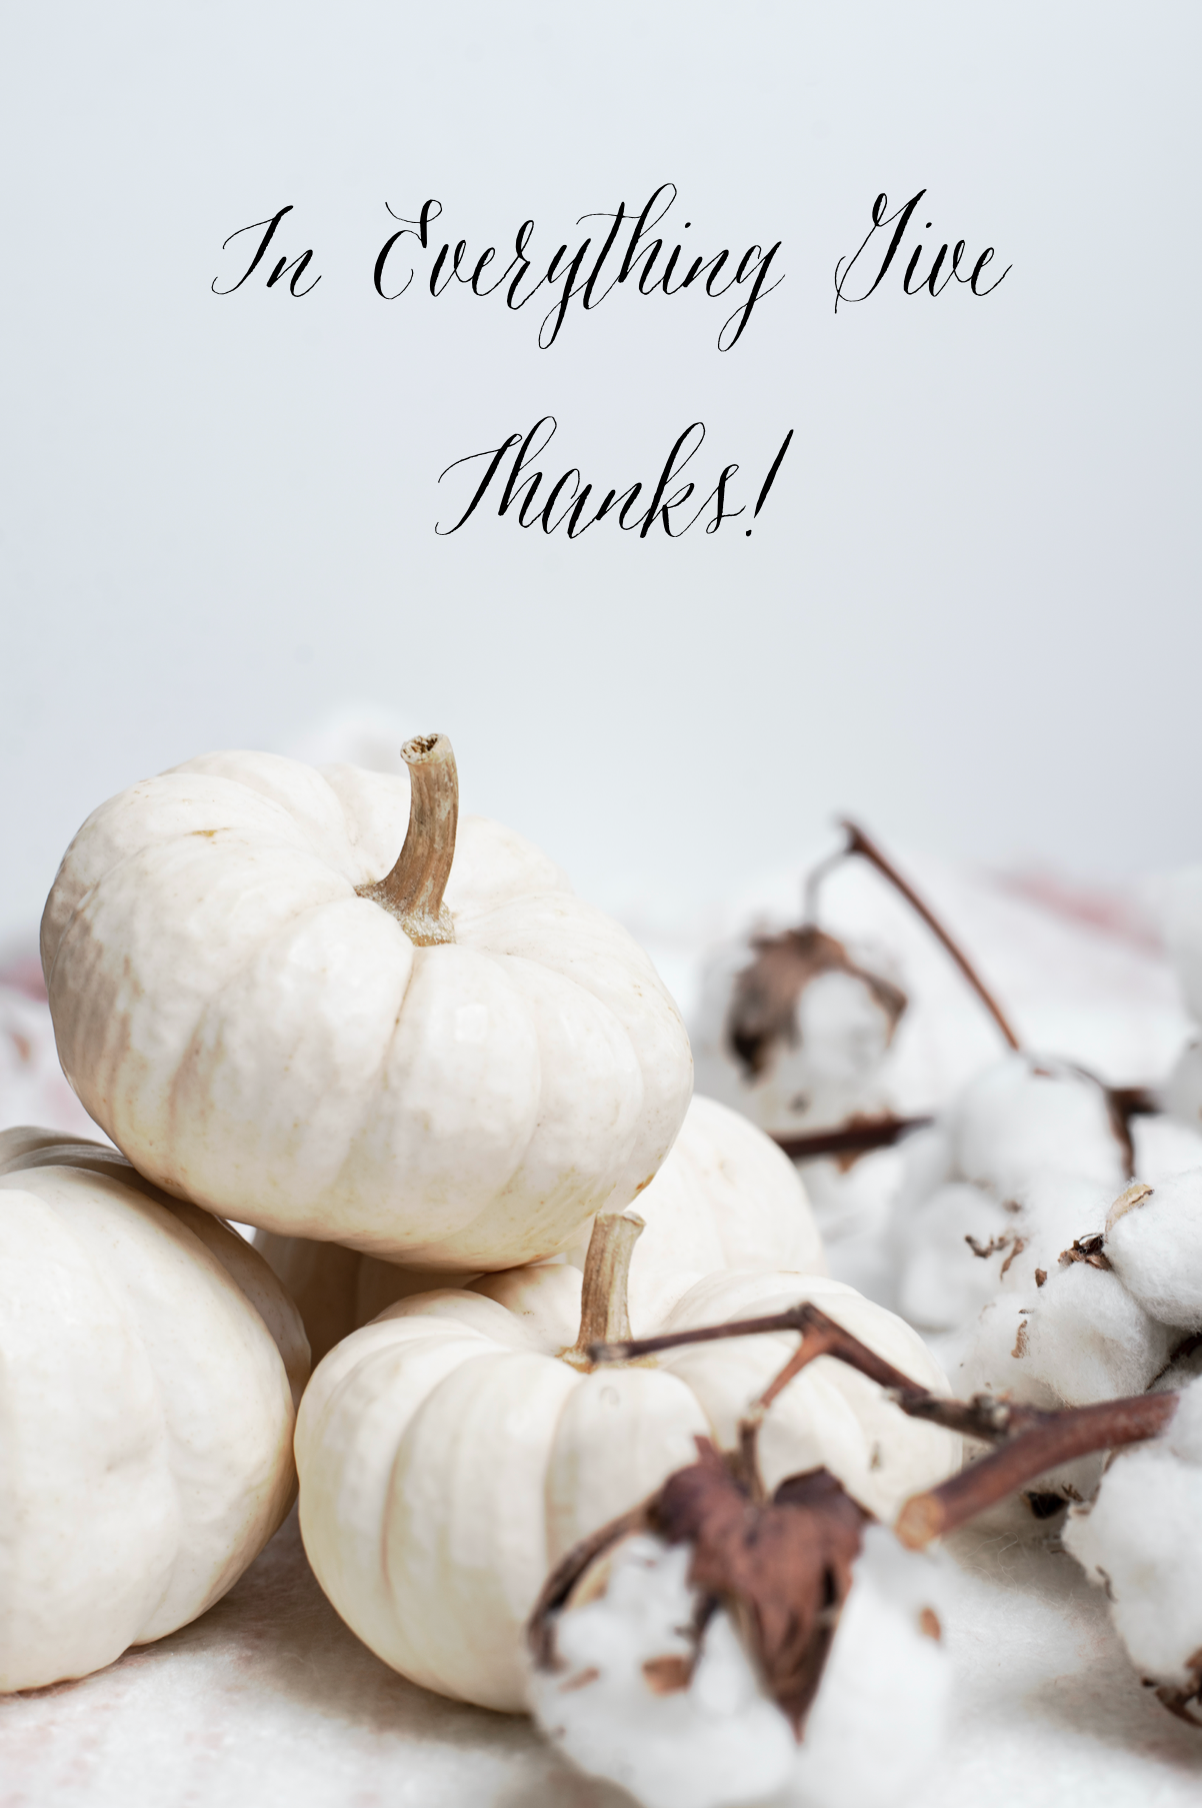 Wishing you a Happy Fall & a Wonderful Thanksgiving.